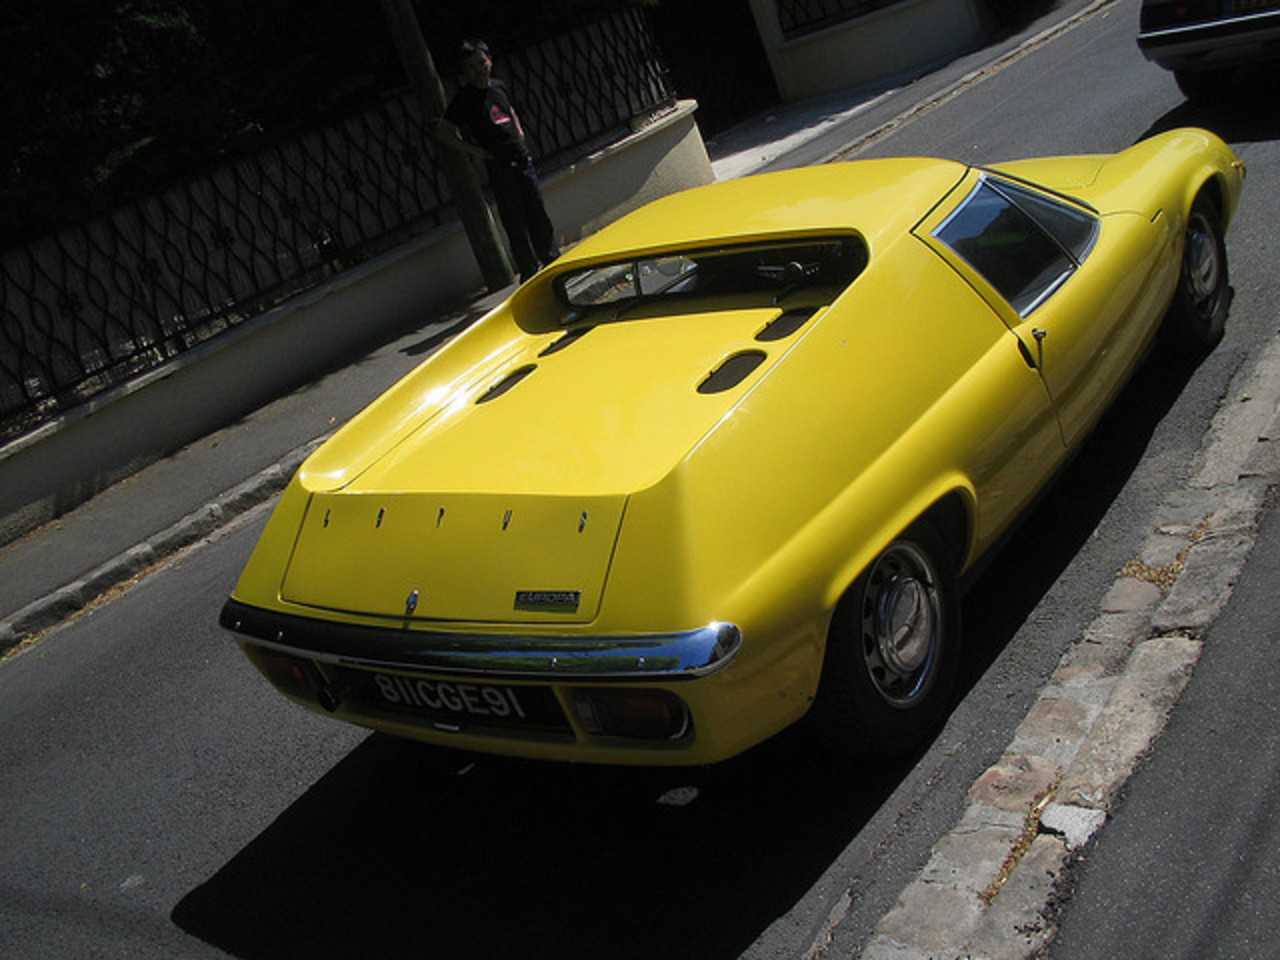 Lotus Europa, S2, 1969, Lotus Yellow | Flickr - Photo Sharing!